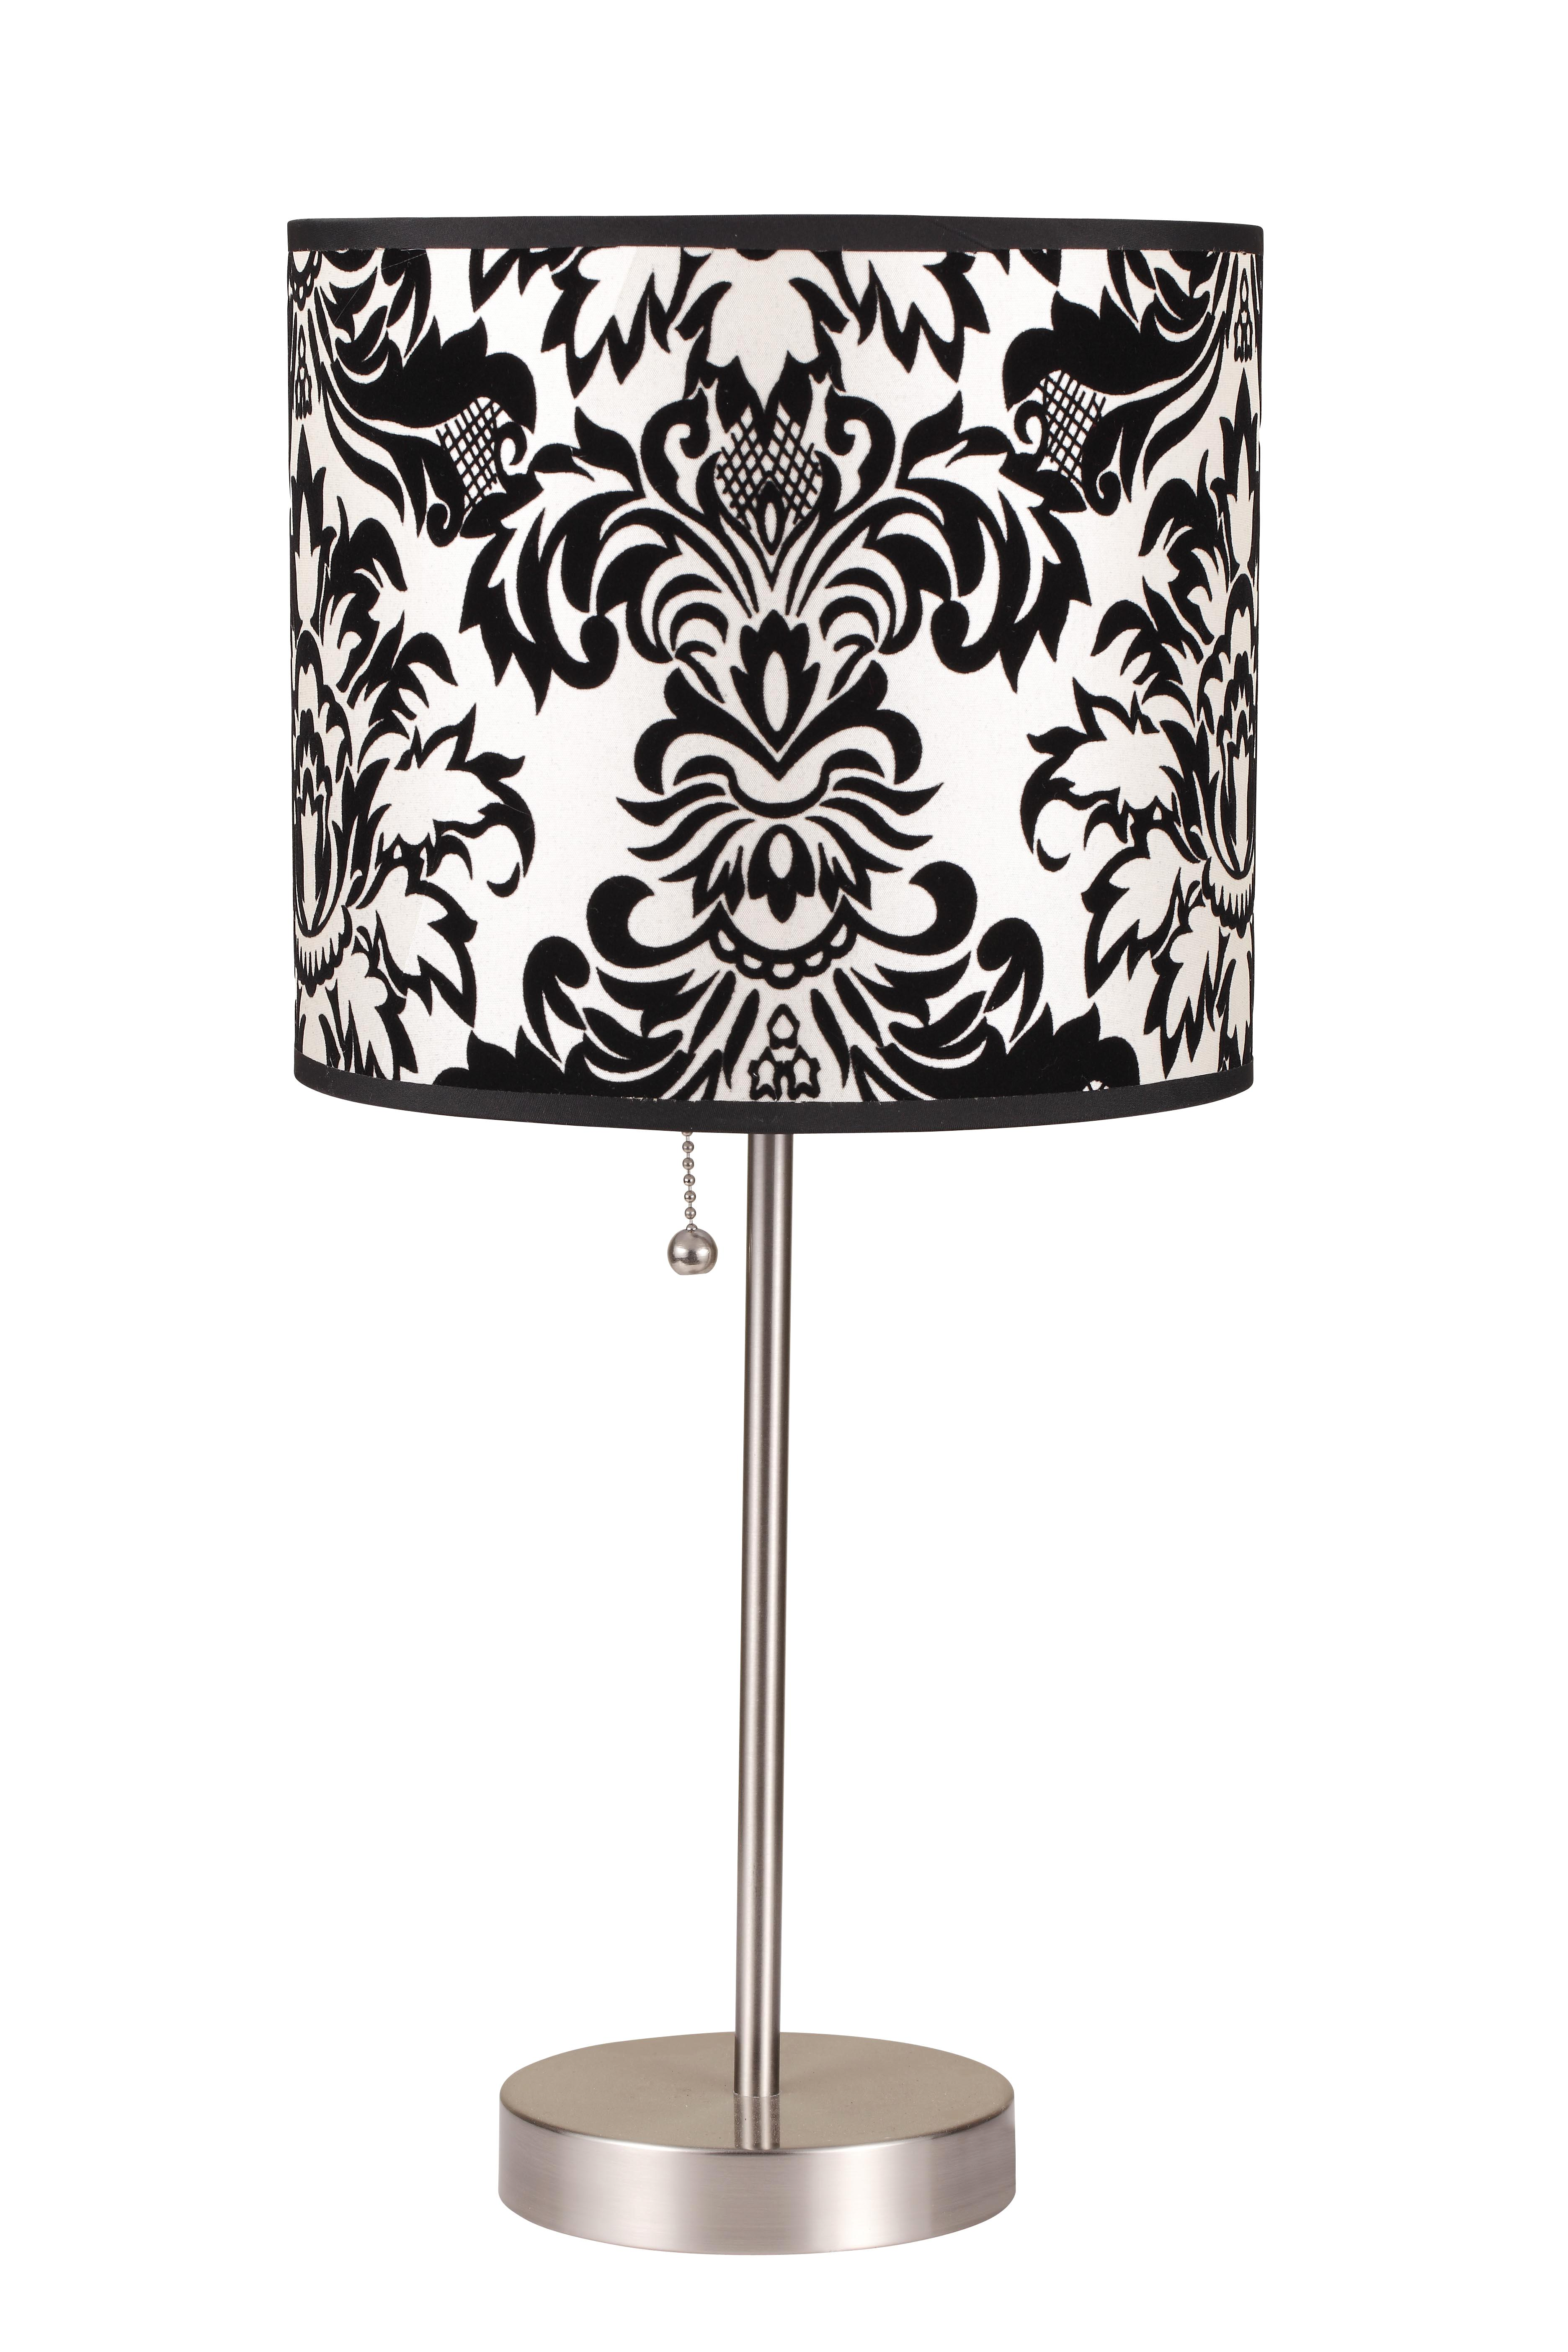 Black And White Table Lamp: ORE International 19 inch H Black/White Print Steel Table Lamp 2 Piece,Lighting